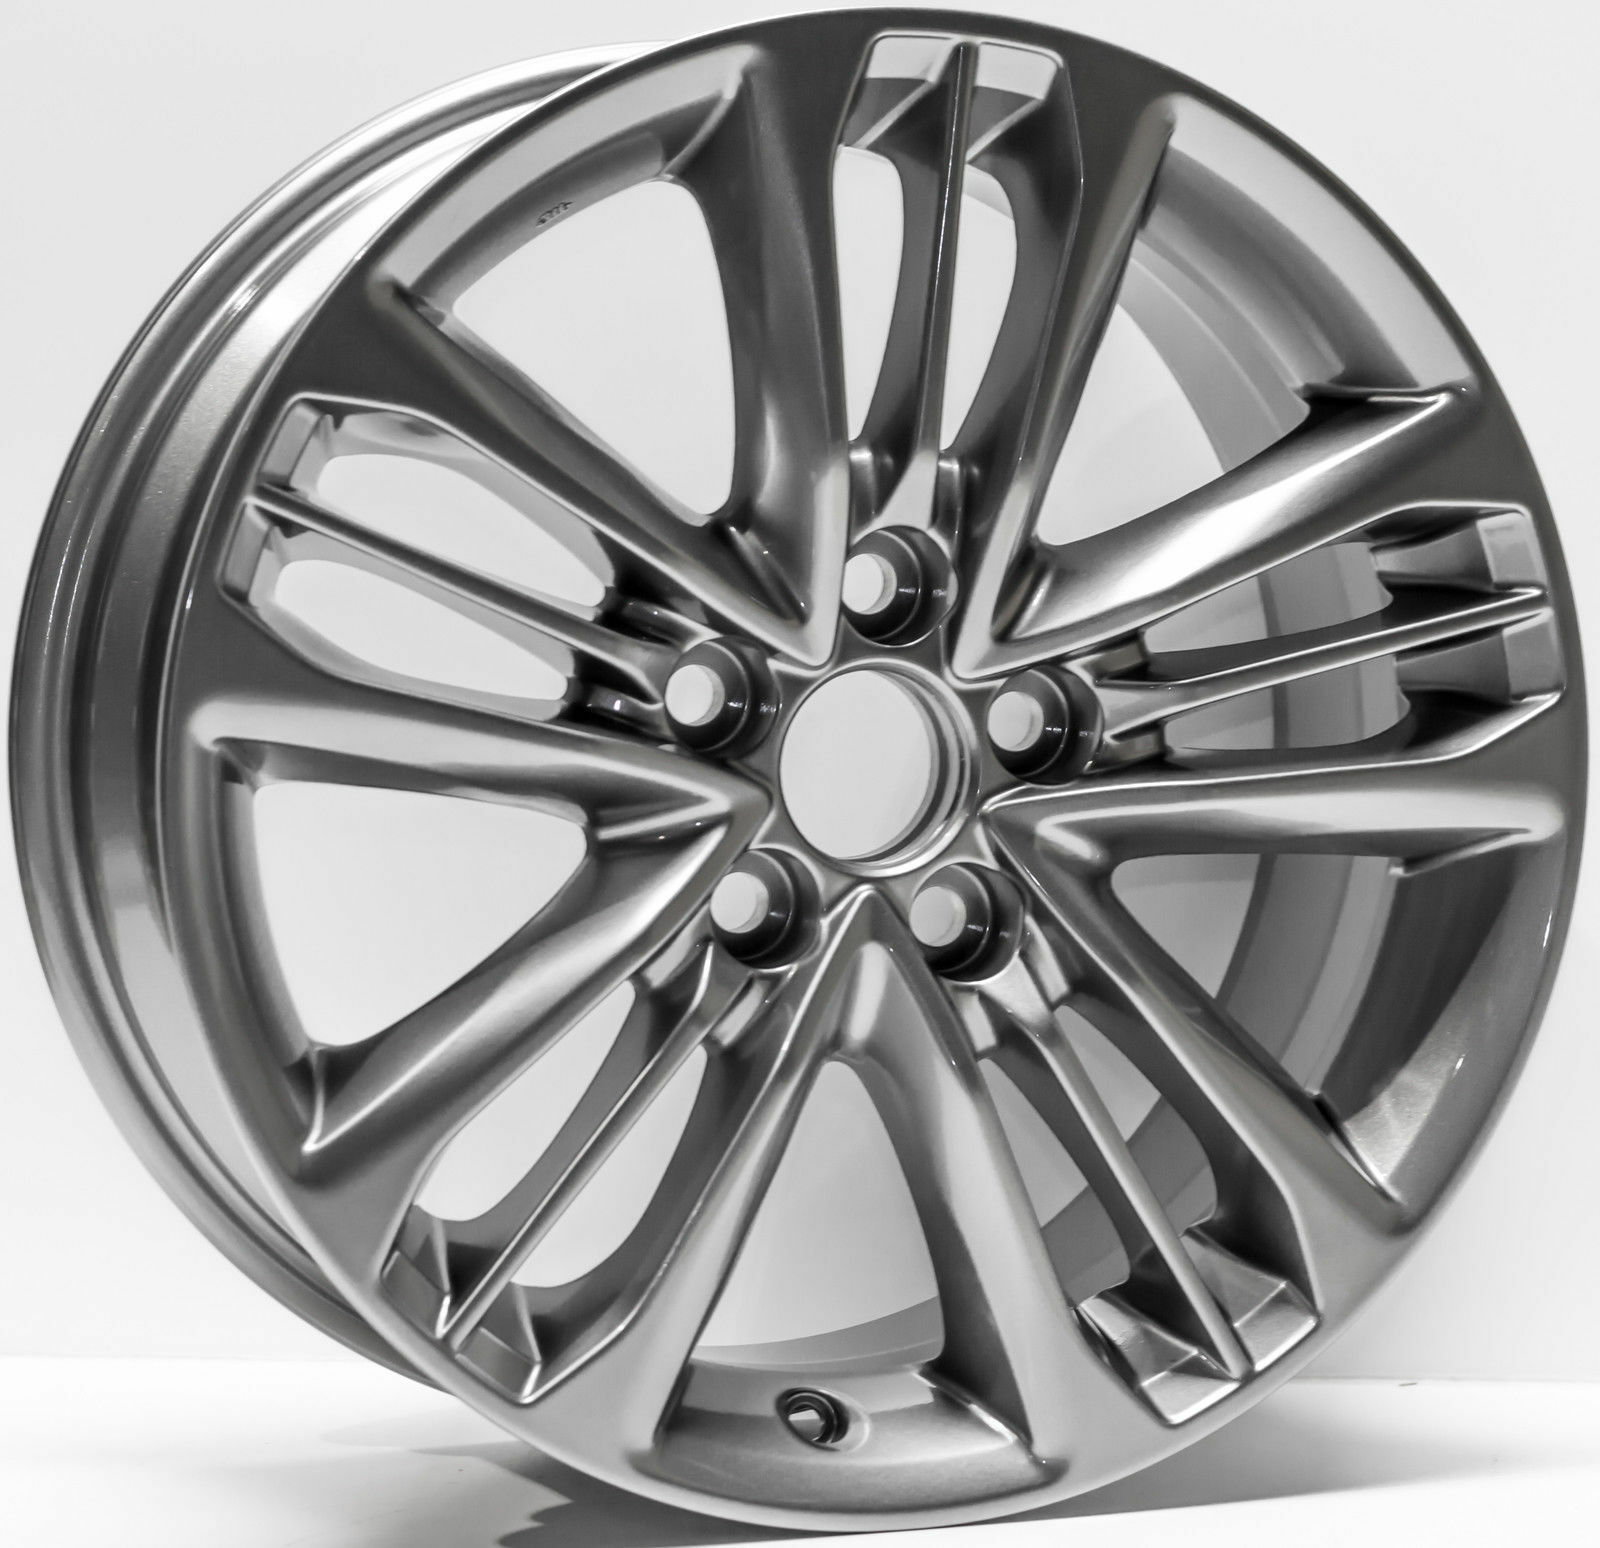 "New 17"" Replacement Alloy Wheel Rim for 2015-2017 Toyota Camry 75171"